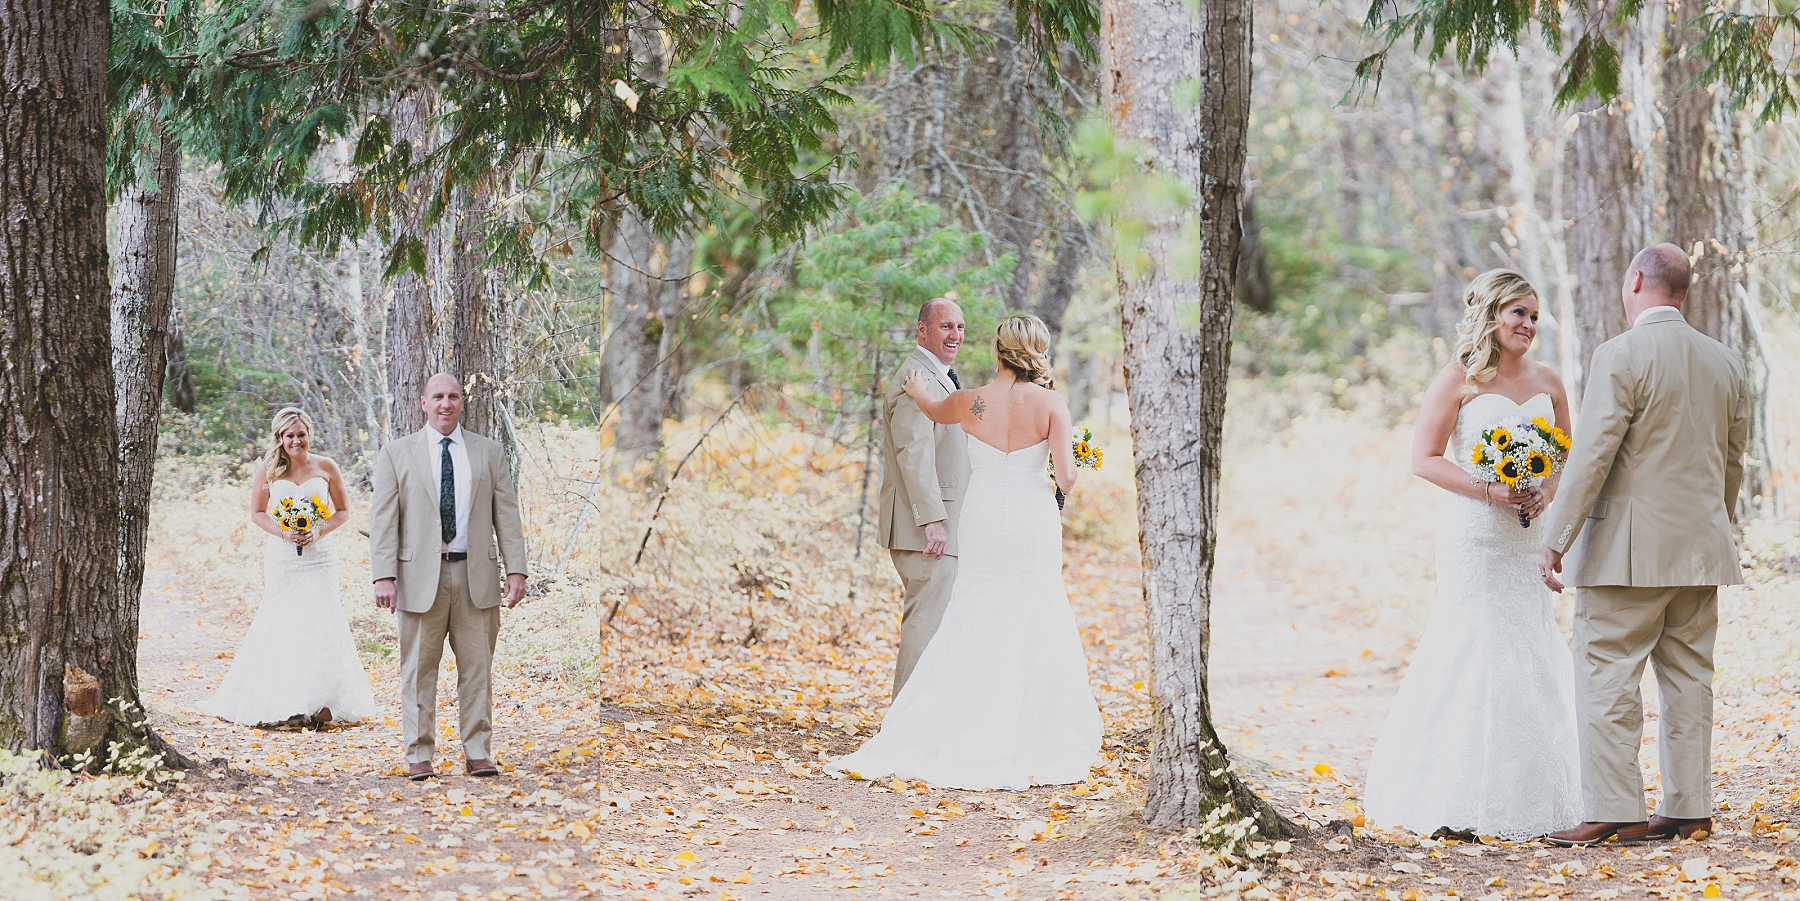 Jennifer_Mooney_photo_glacier_outdoor_center_wedding_montana_fall_elegant_rustic_romantic-34.jpg